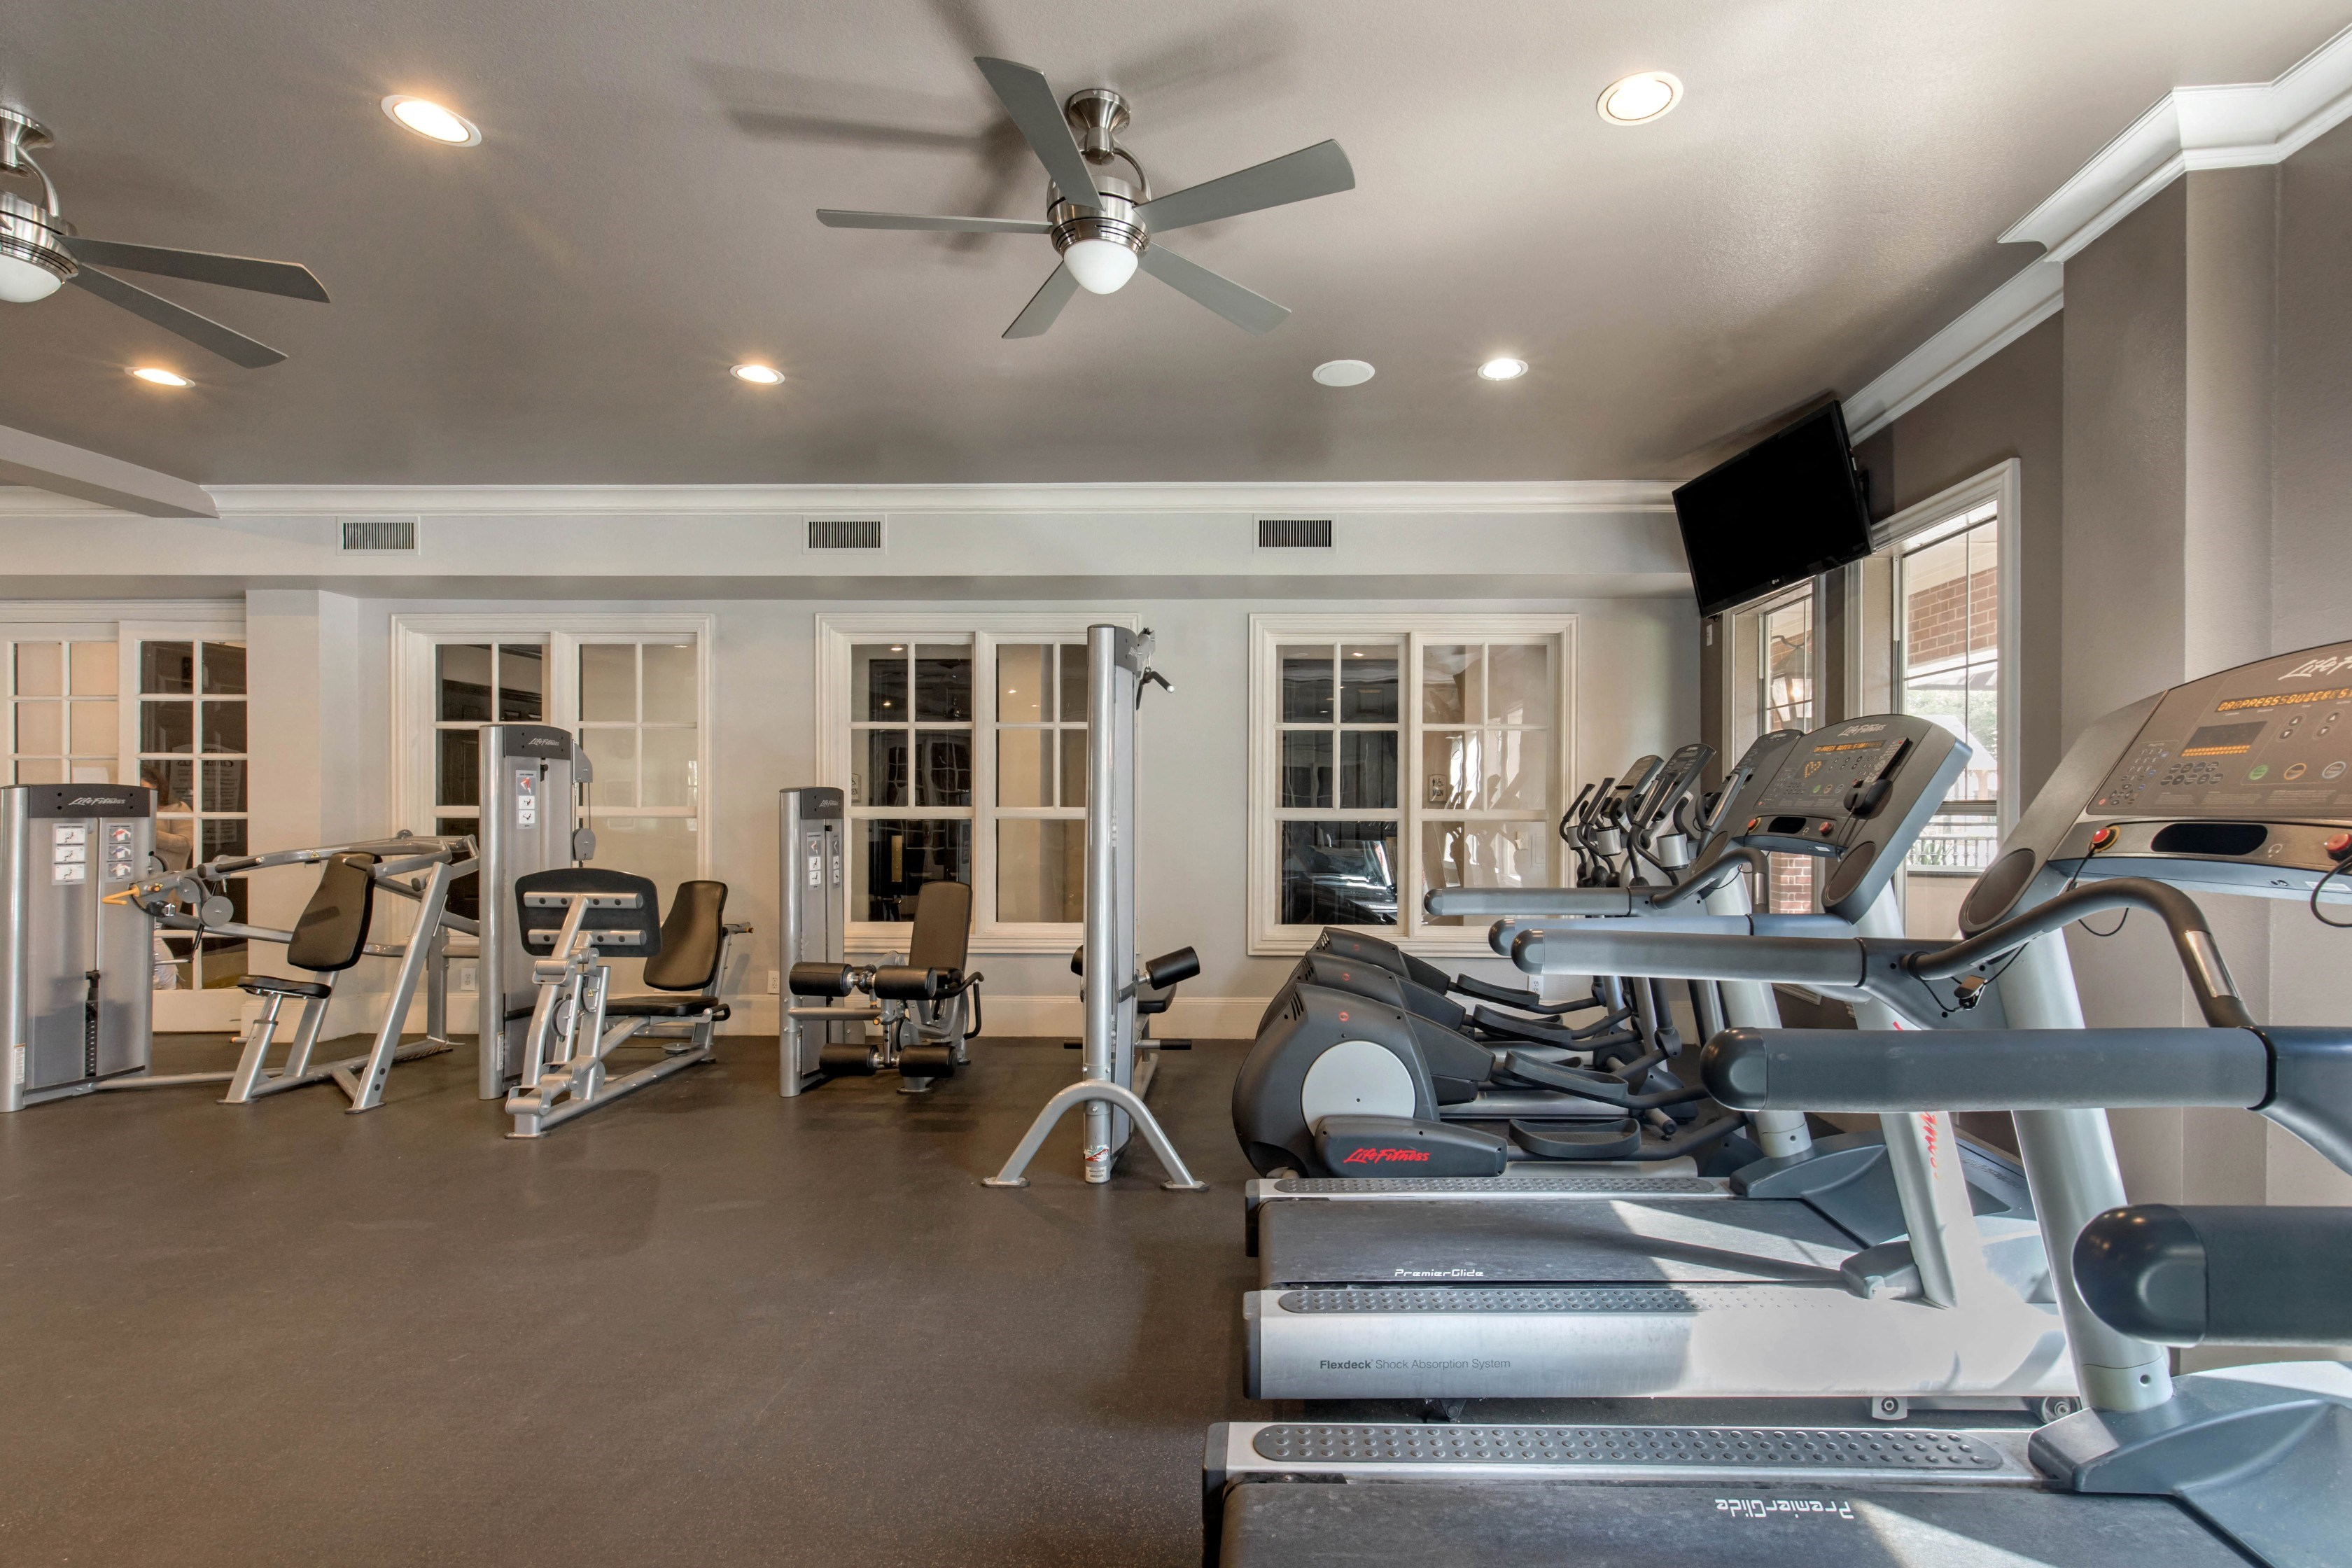 Fitness center with ceiling fans, treadmills, and a spacious area to workout